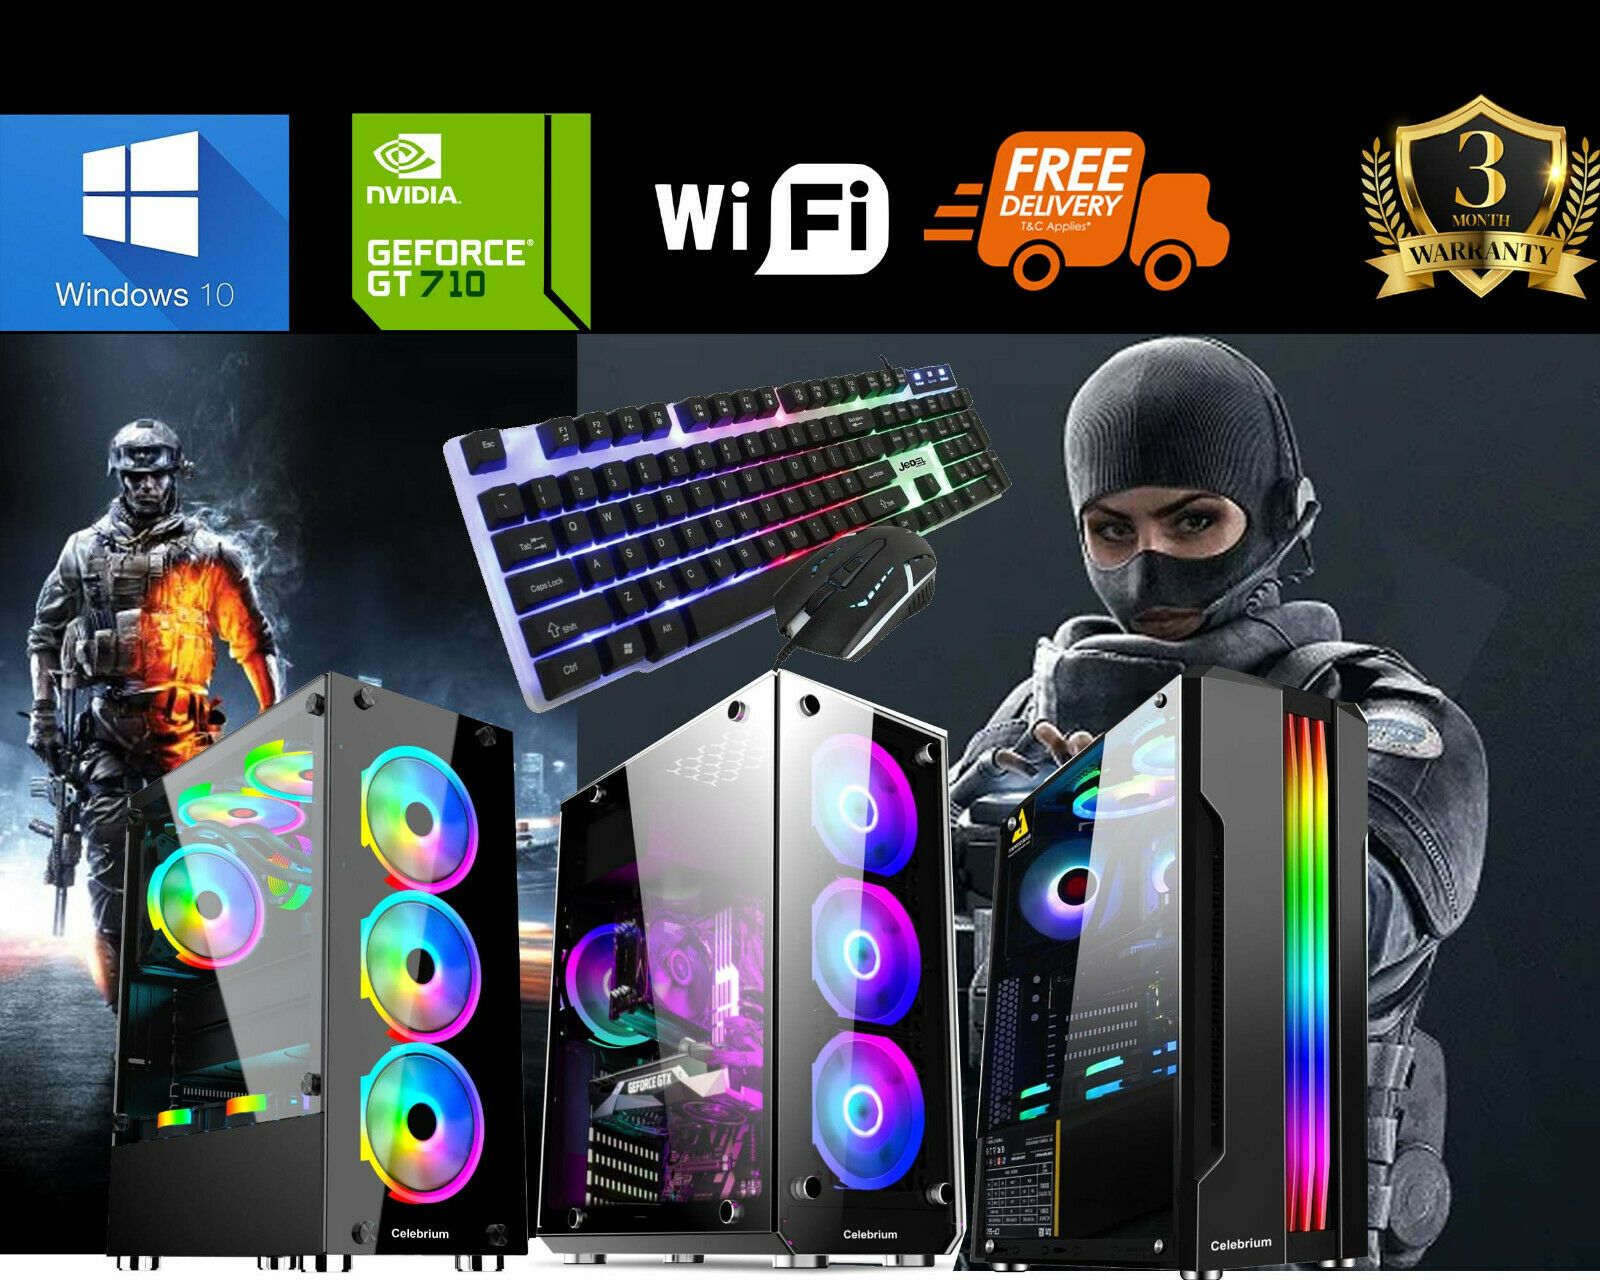 Computer Games - Fast Gaming PC Computer Bundle Intel Core i5 16GB 1TB 256GB SSD Win10 GT710 WiFi